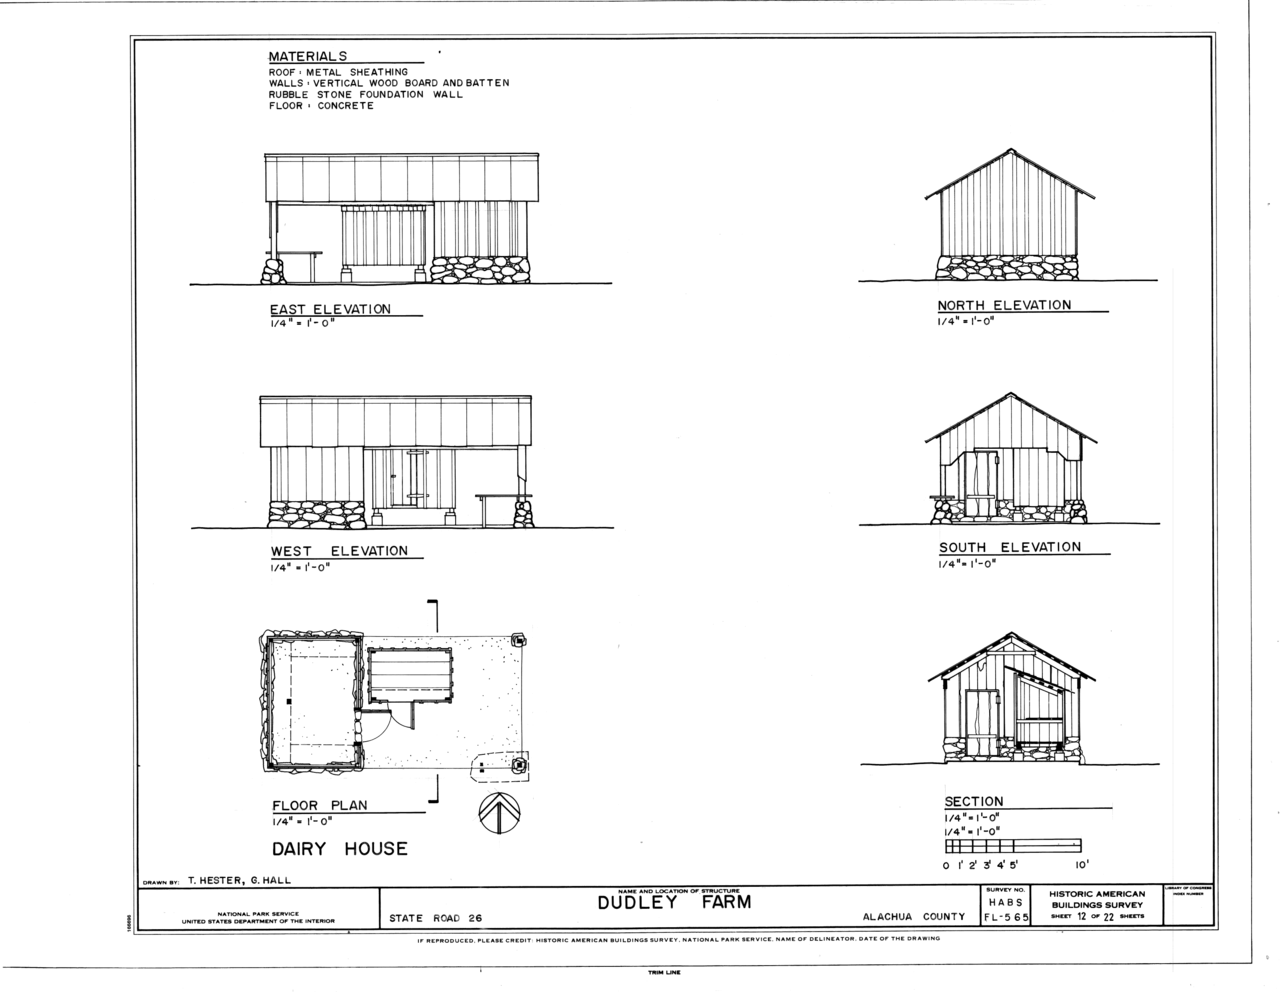 File Dairy House Elevations Floor Plan And Section